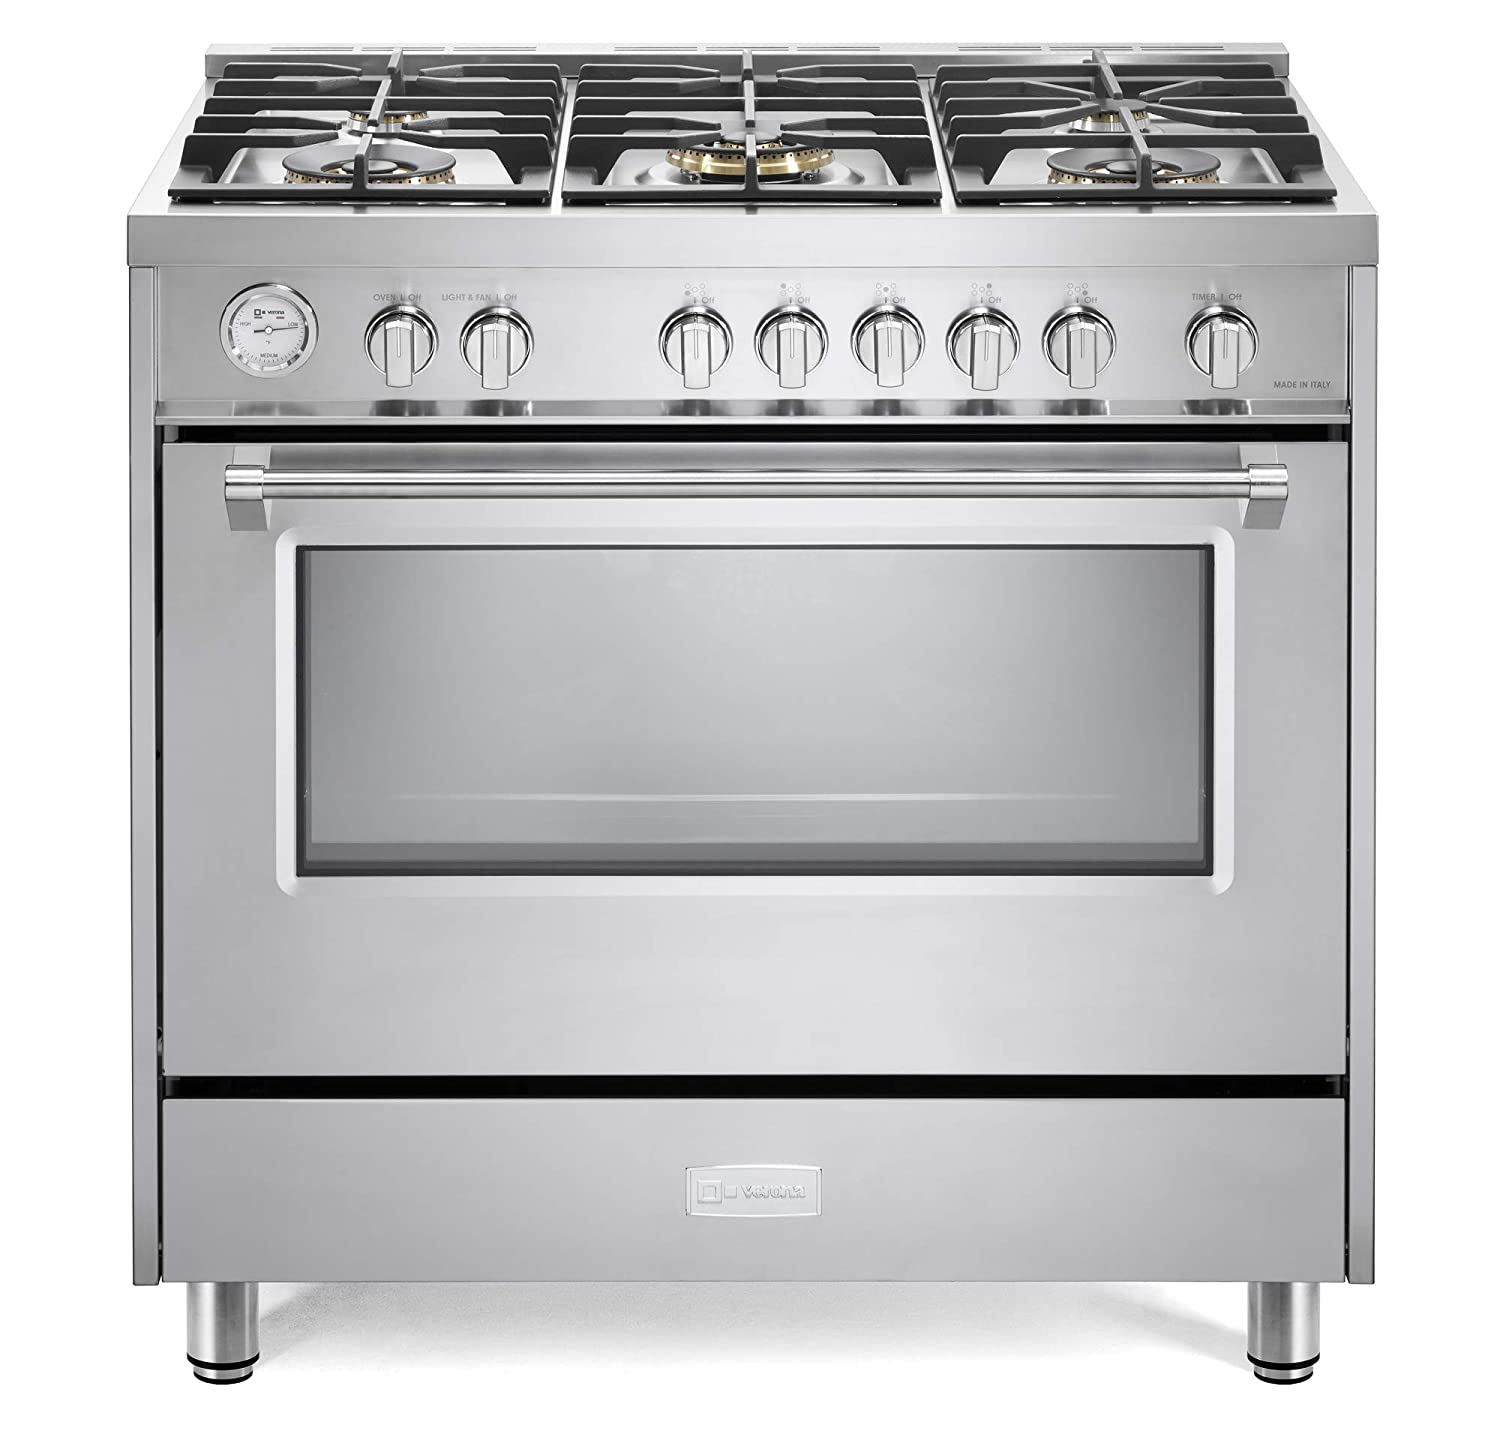 Verona Designer Series VDFSGG365SS 36 inch All Gas 5 cu.Ft Range Oven 5 Sealed Brass Burners Cooktop Turbo Convection Stainless Steel